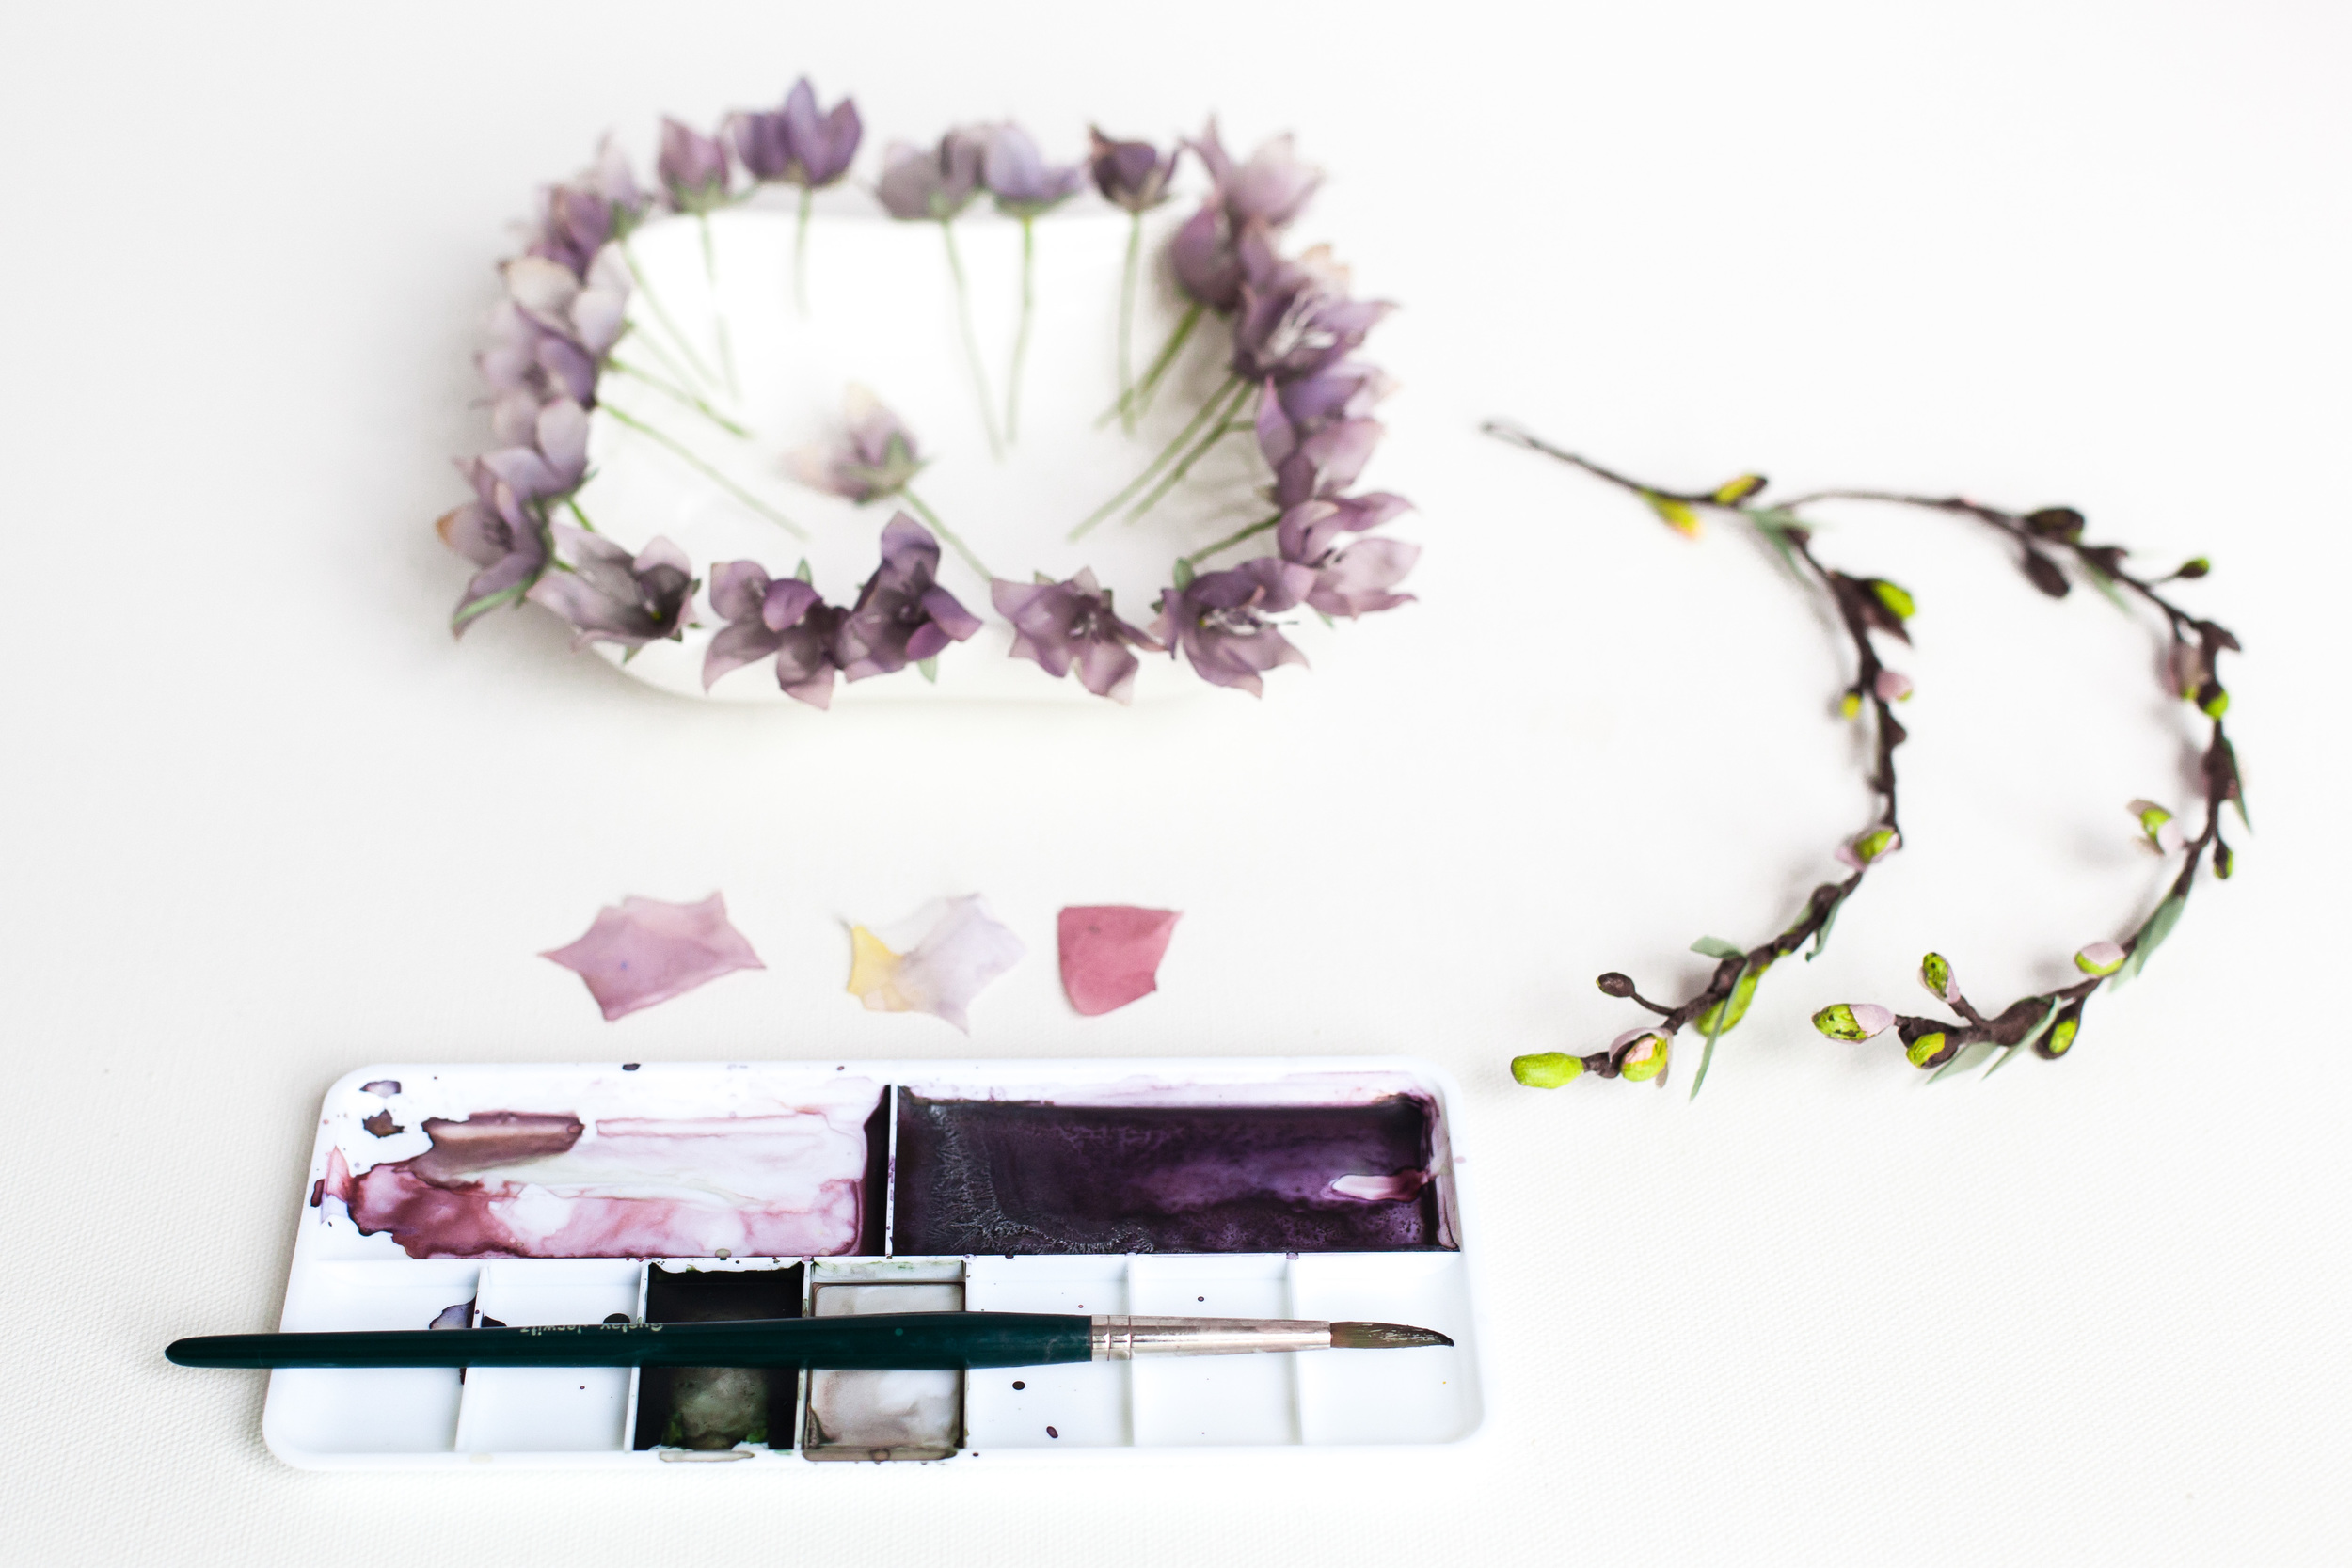 Creative-work-in-progress-handmade-silk-flower-crown